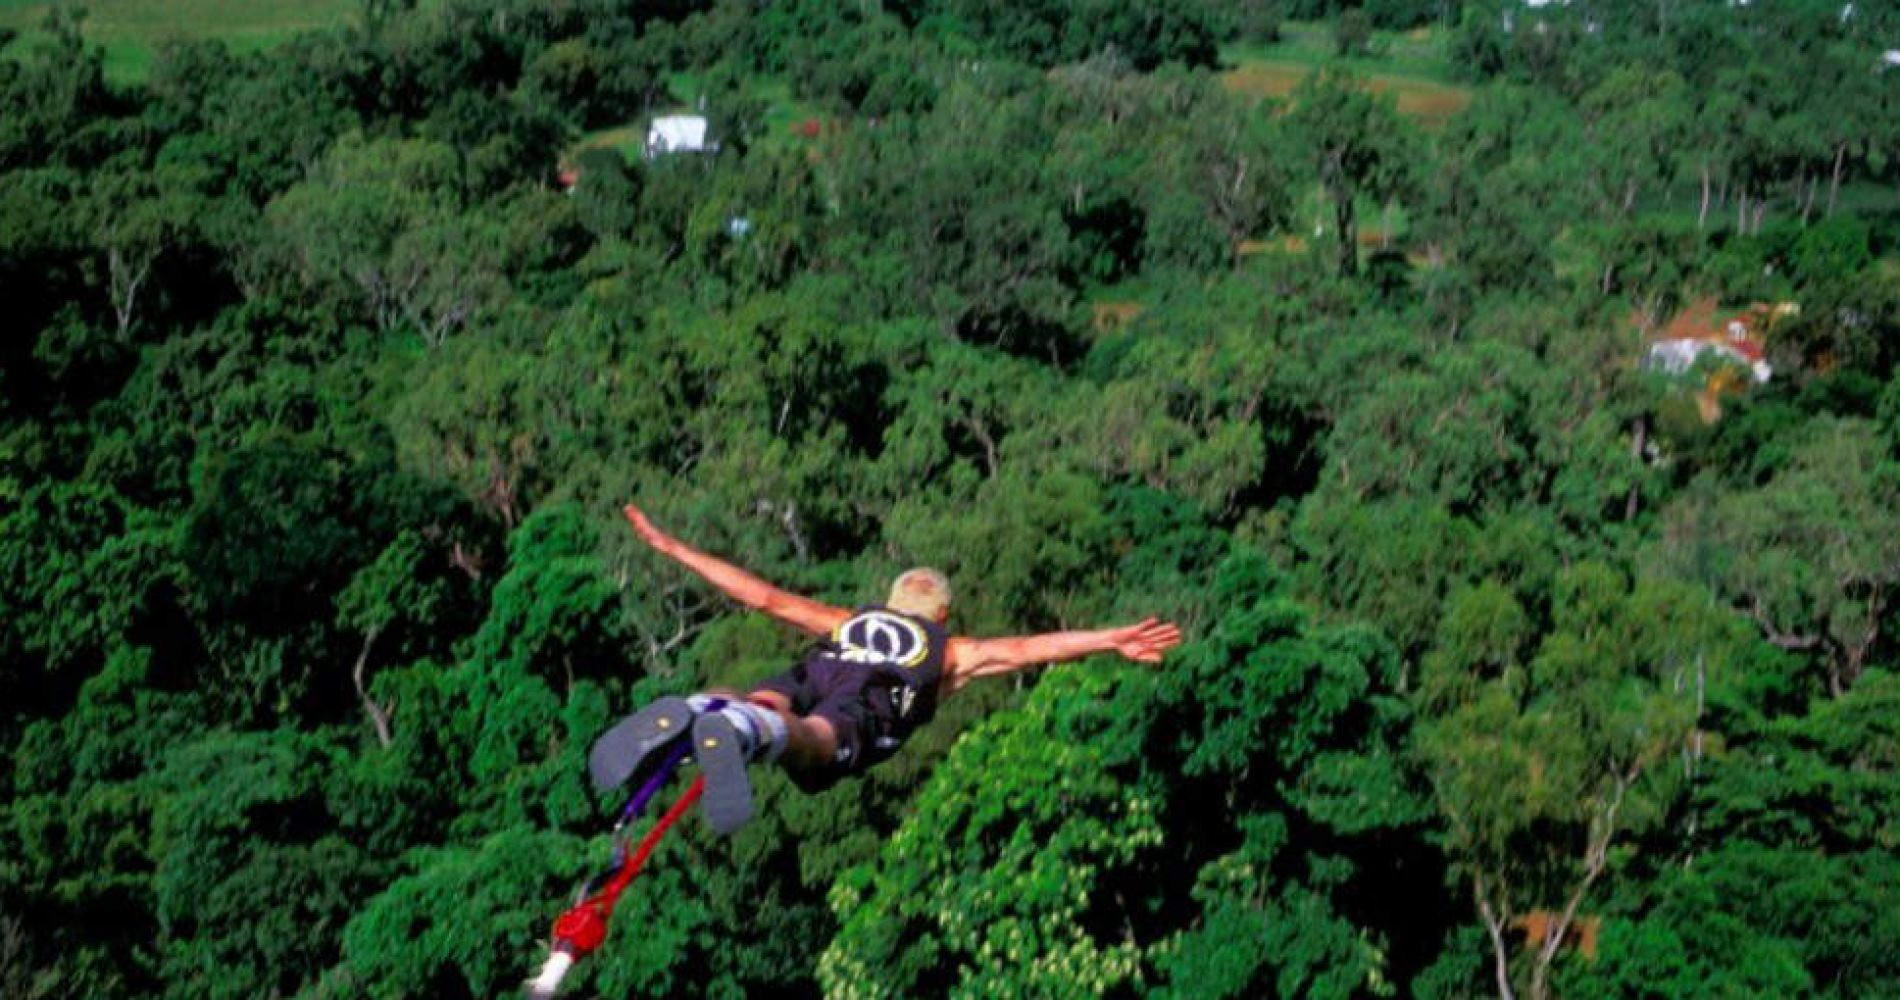 Bungee jumping experience gifts